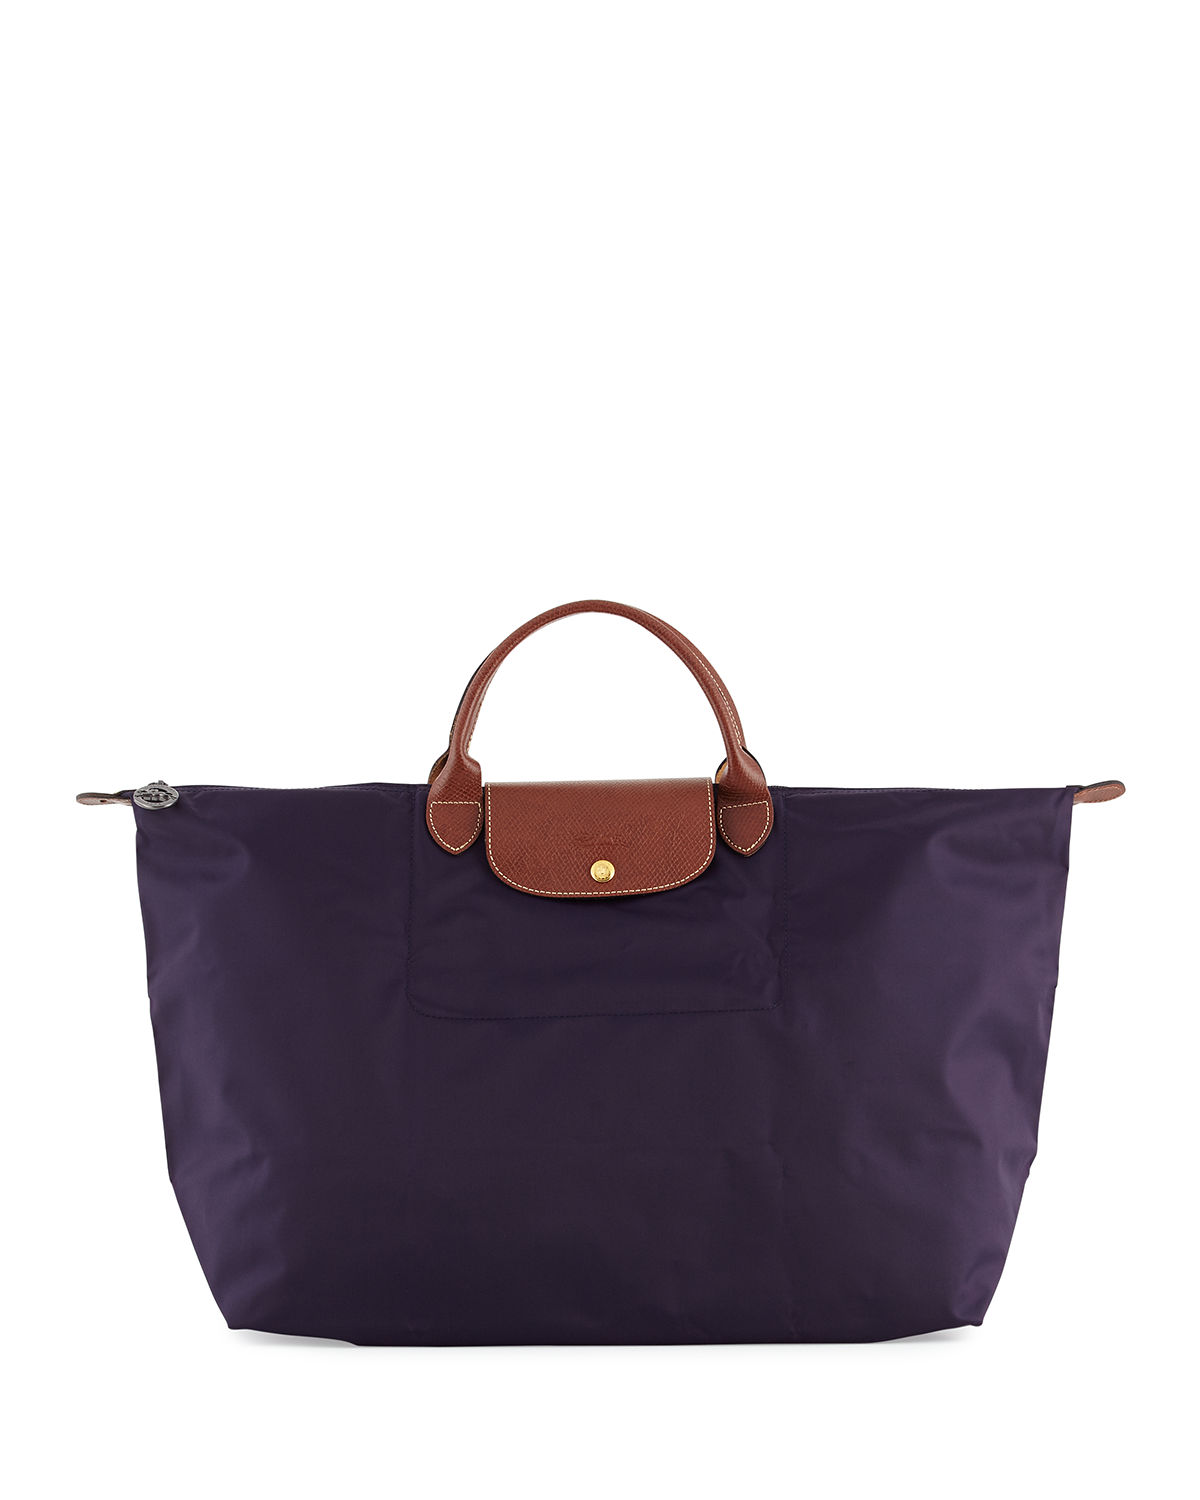 Longchamp Le Pliage Large Travel Bag  1c7ffb775f121